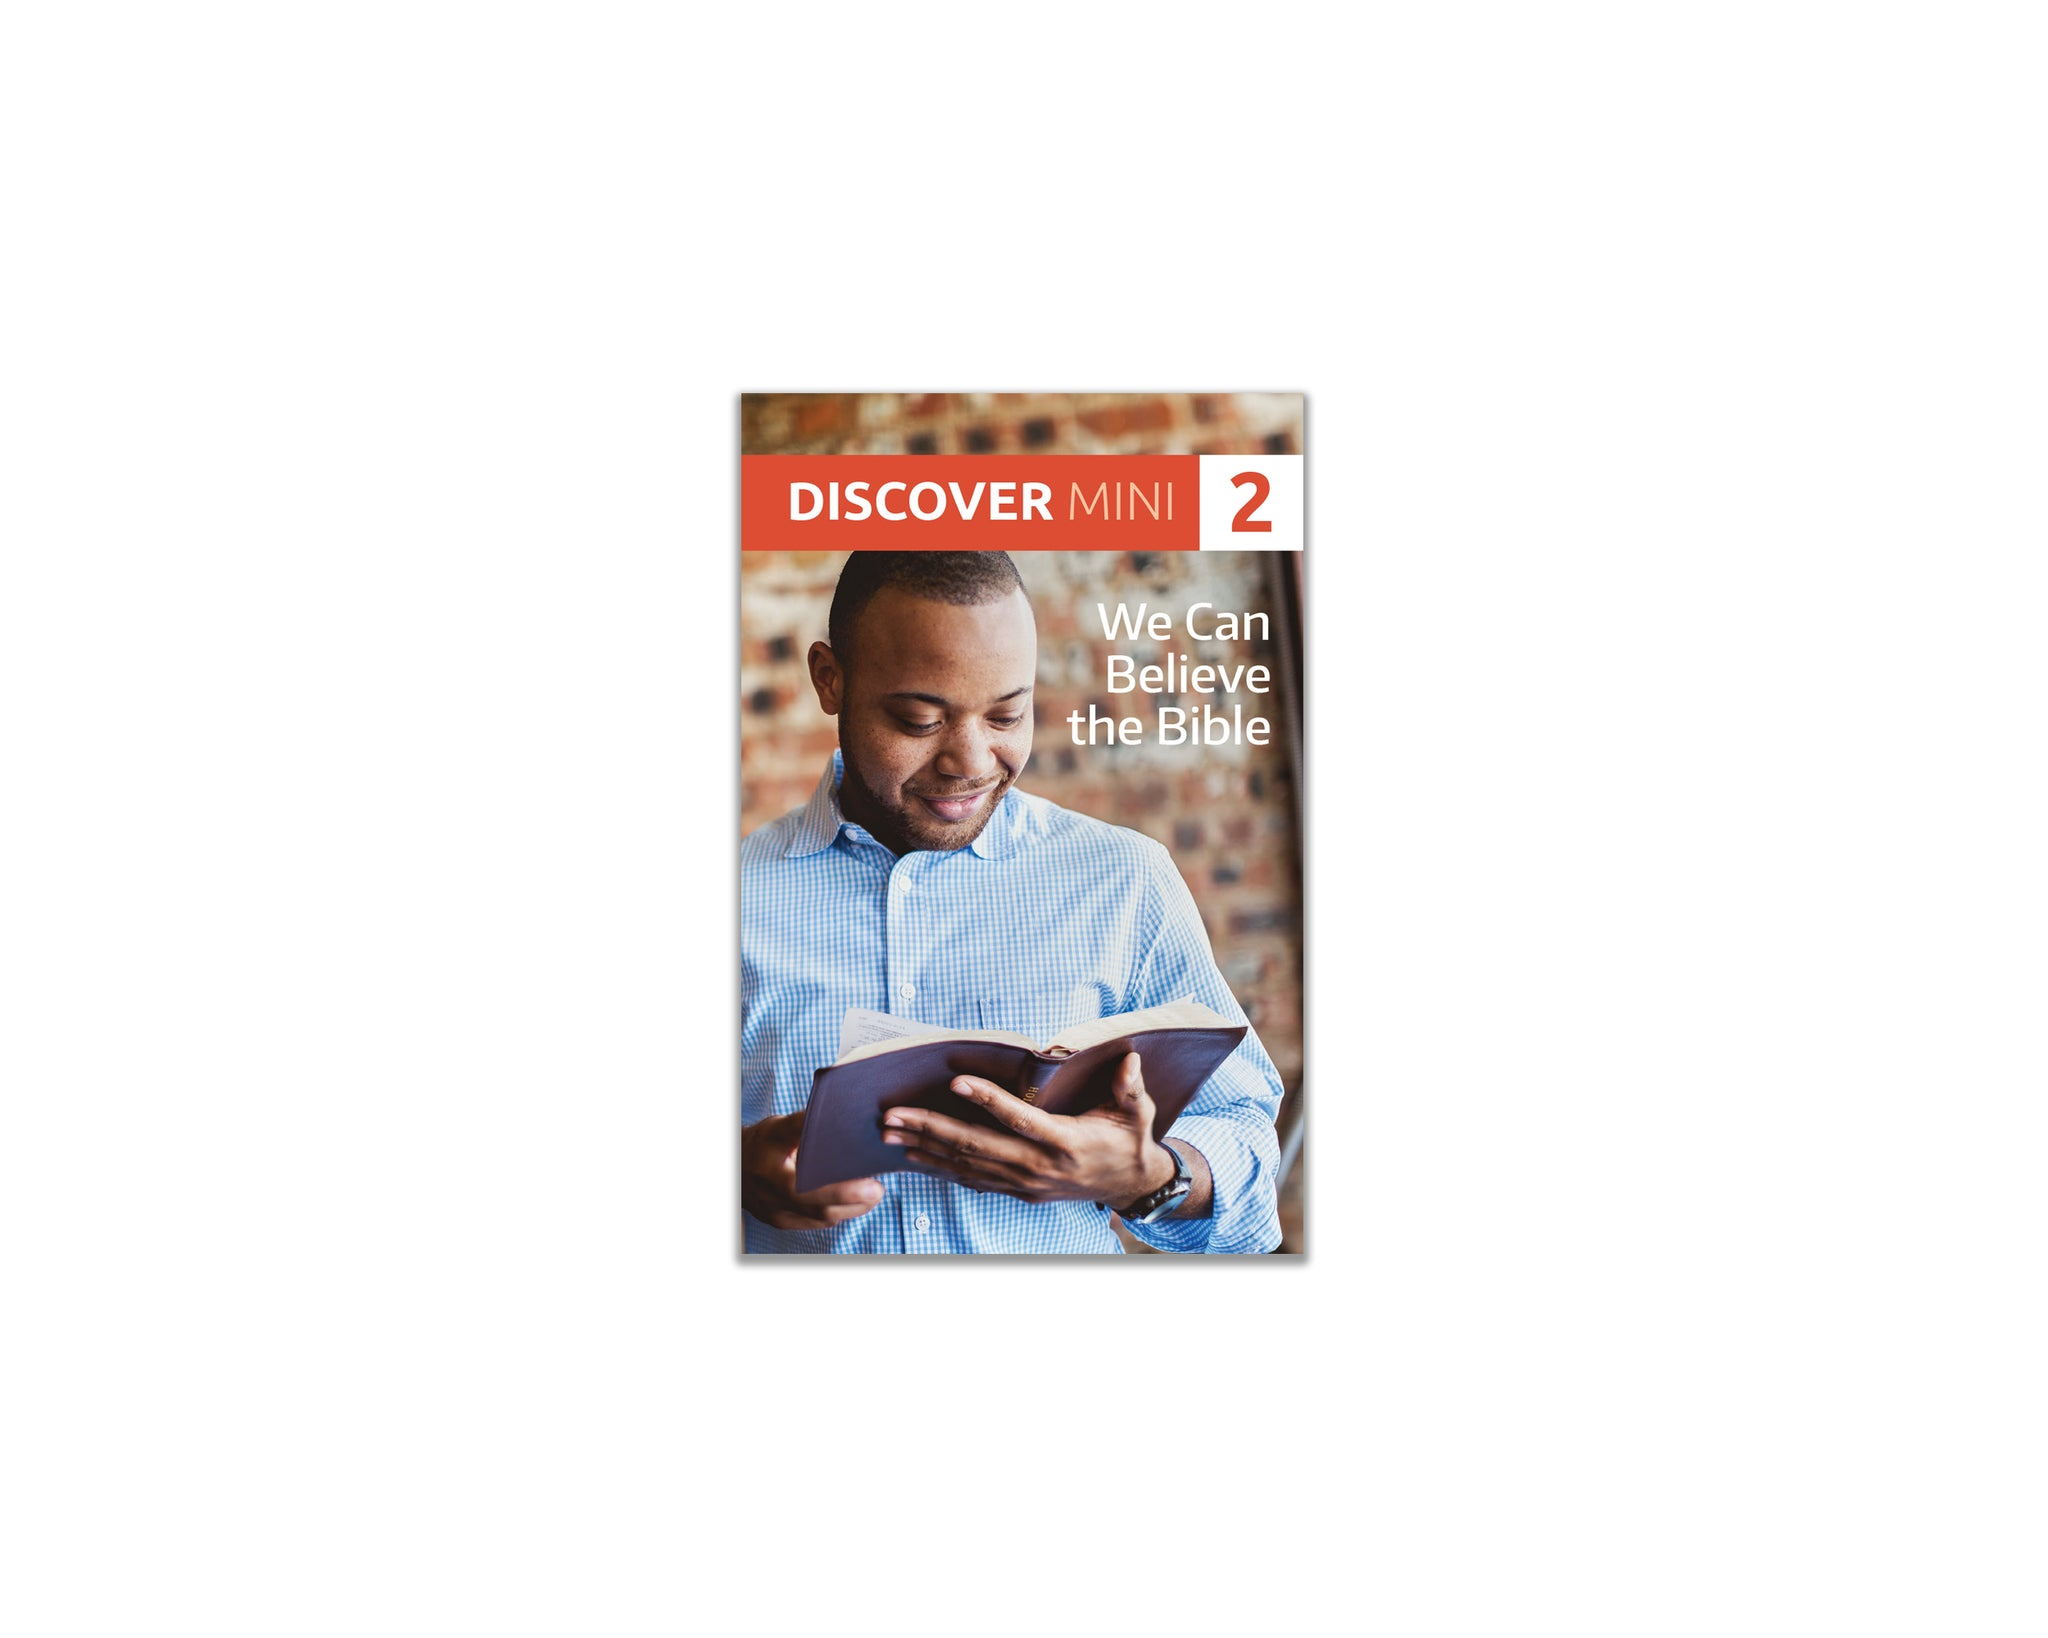 Discover Mini #2 - We Can Believe the Bible